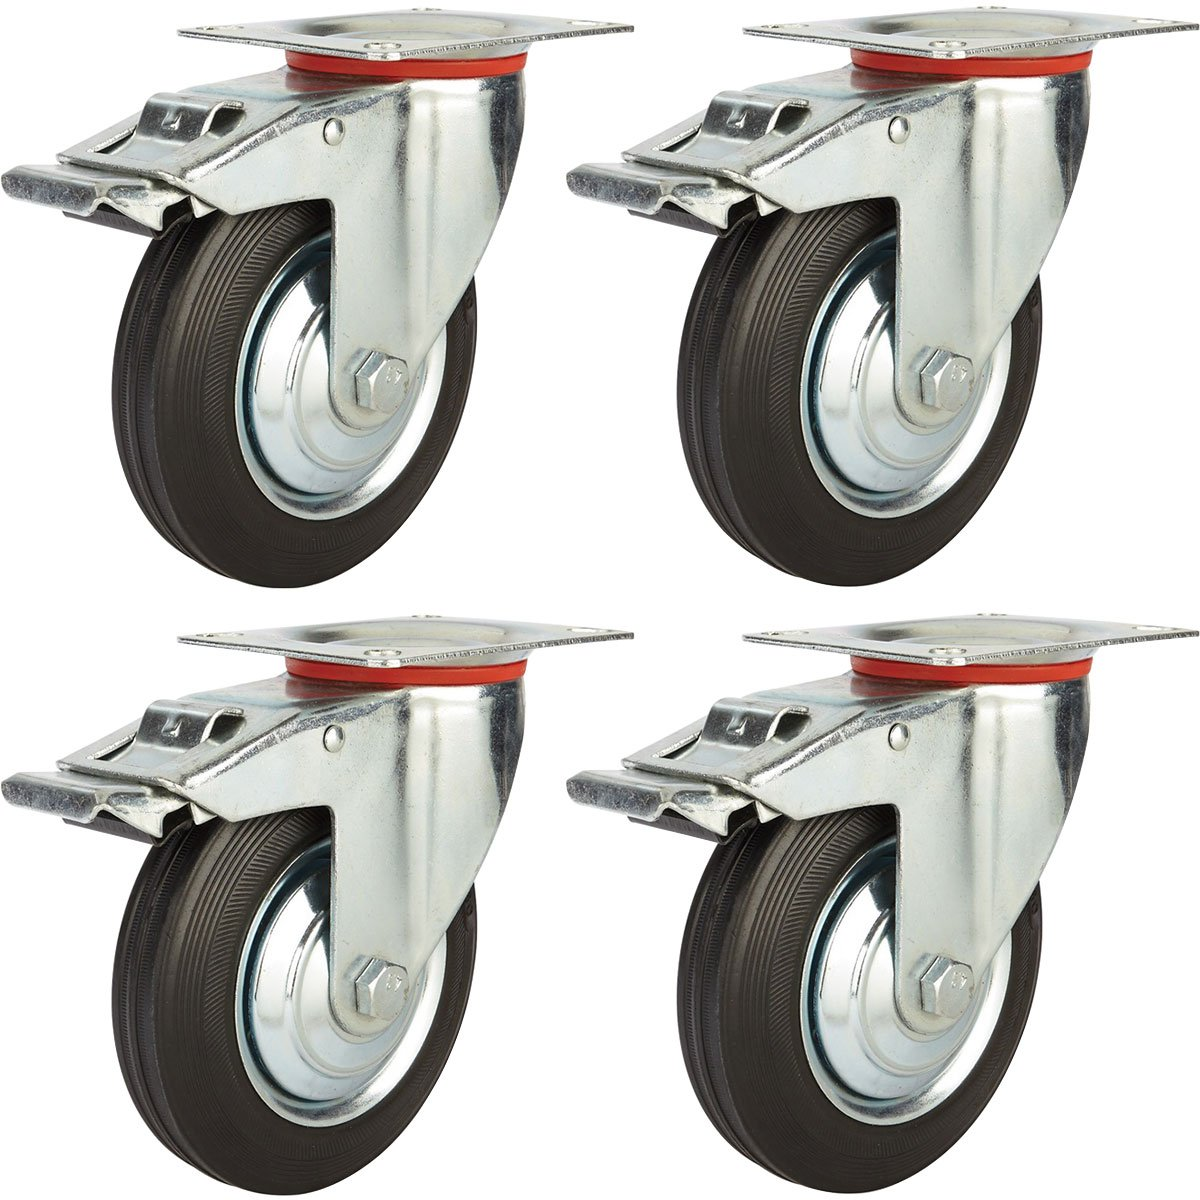 Online Best Service 4 Pack 5'' Swivel Caster with Brake Wheels Rubber Base with Top Plate & Bearing Heavy Duty